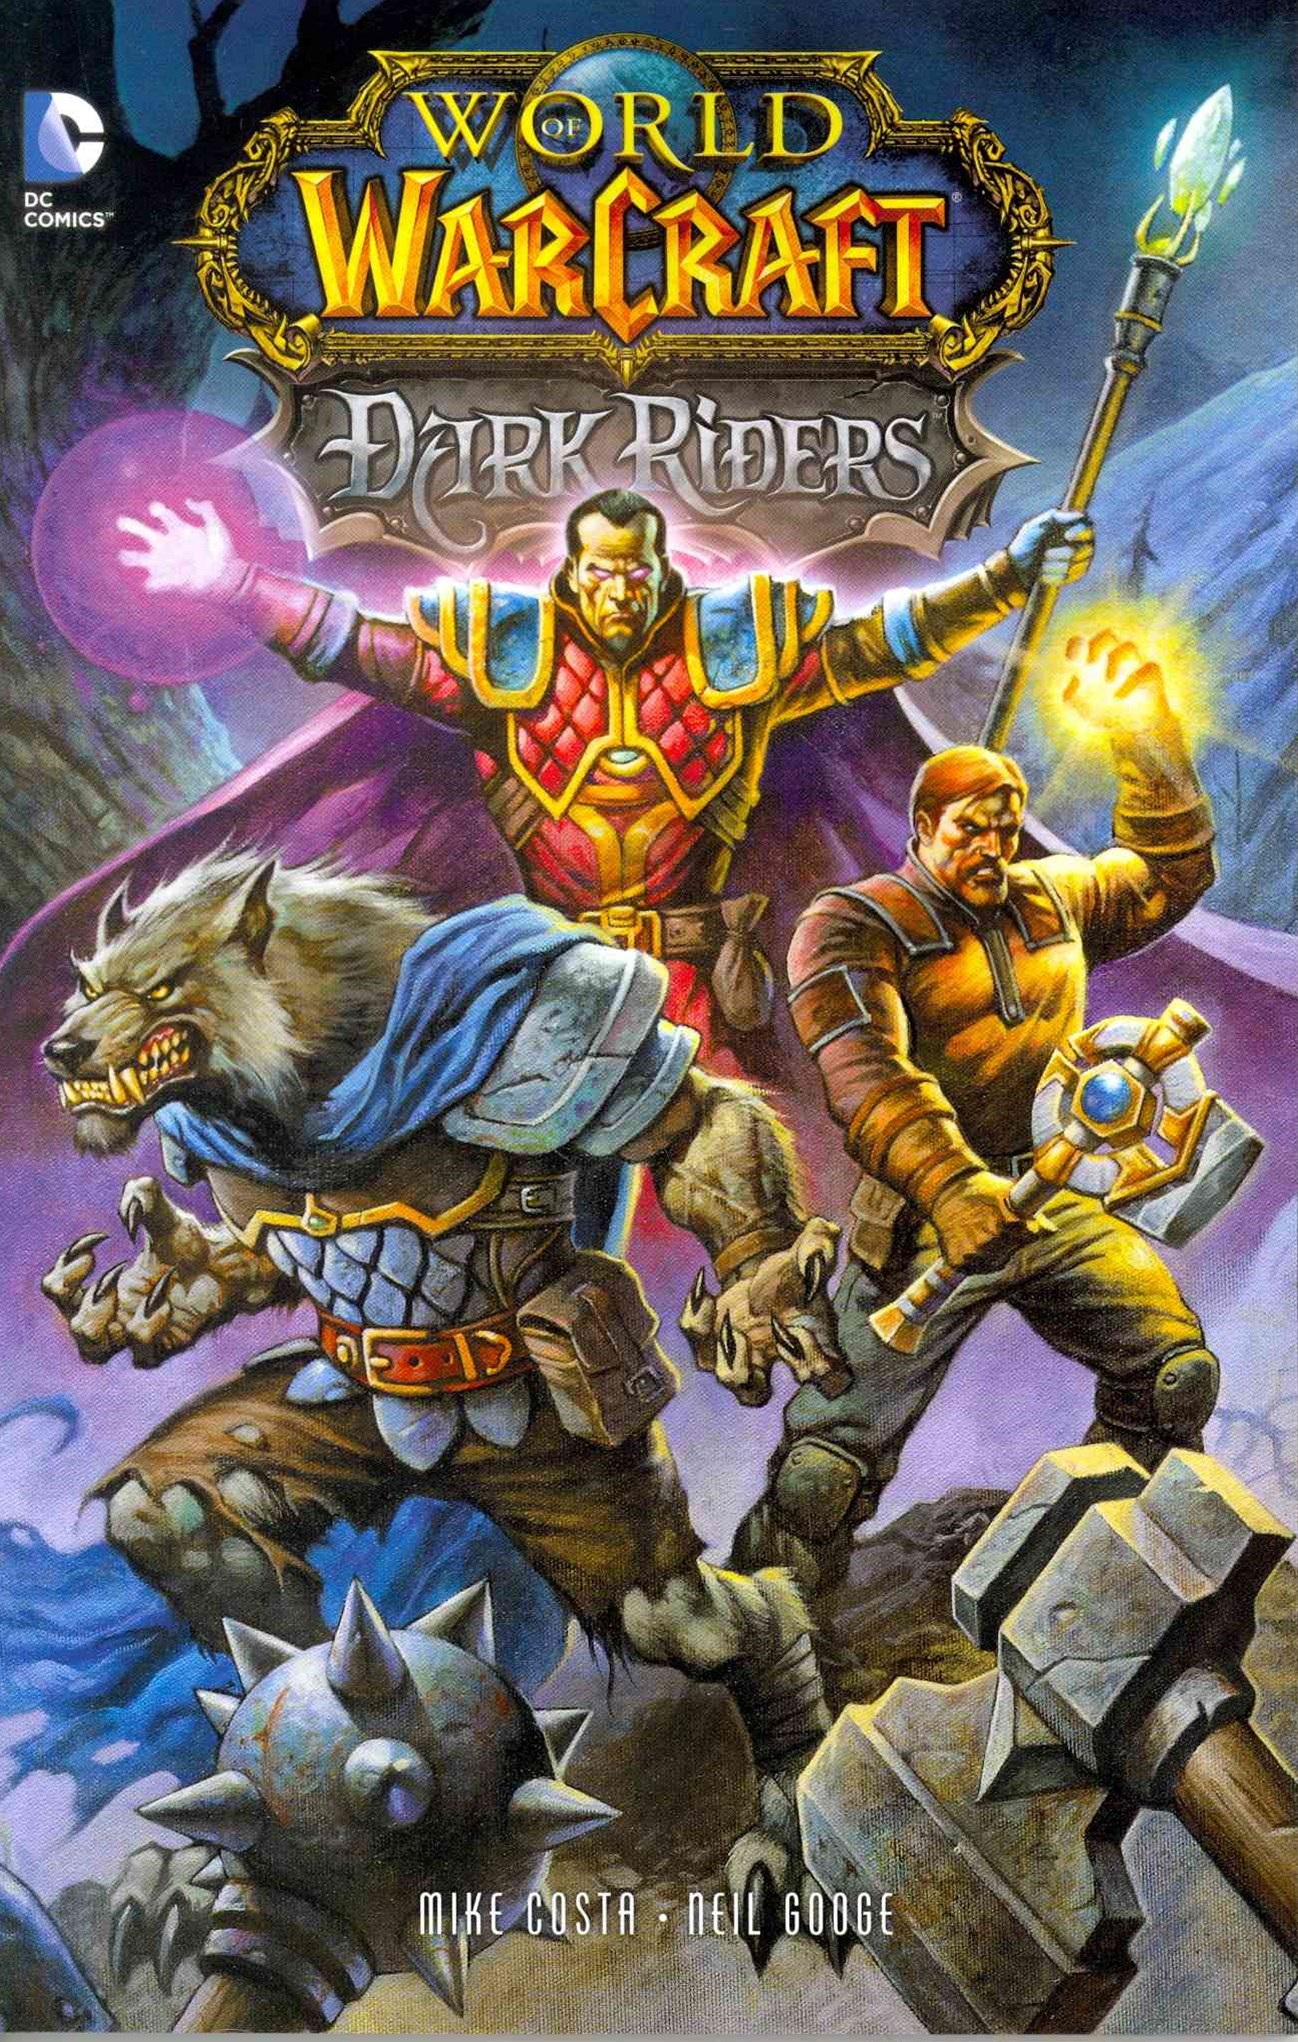 World of Warcraf - Dark Riders